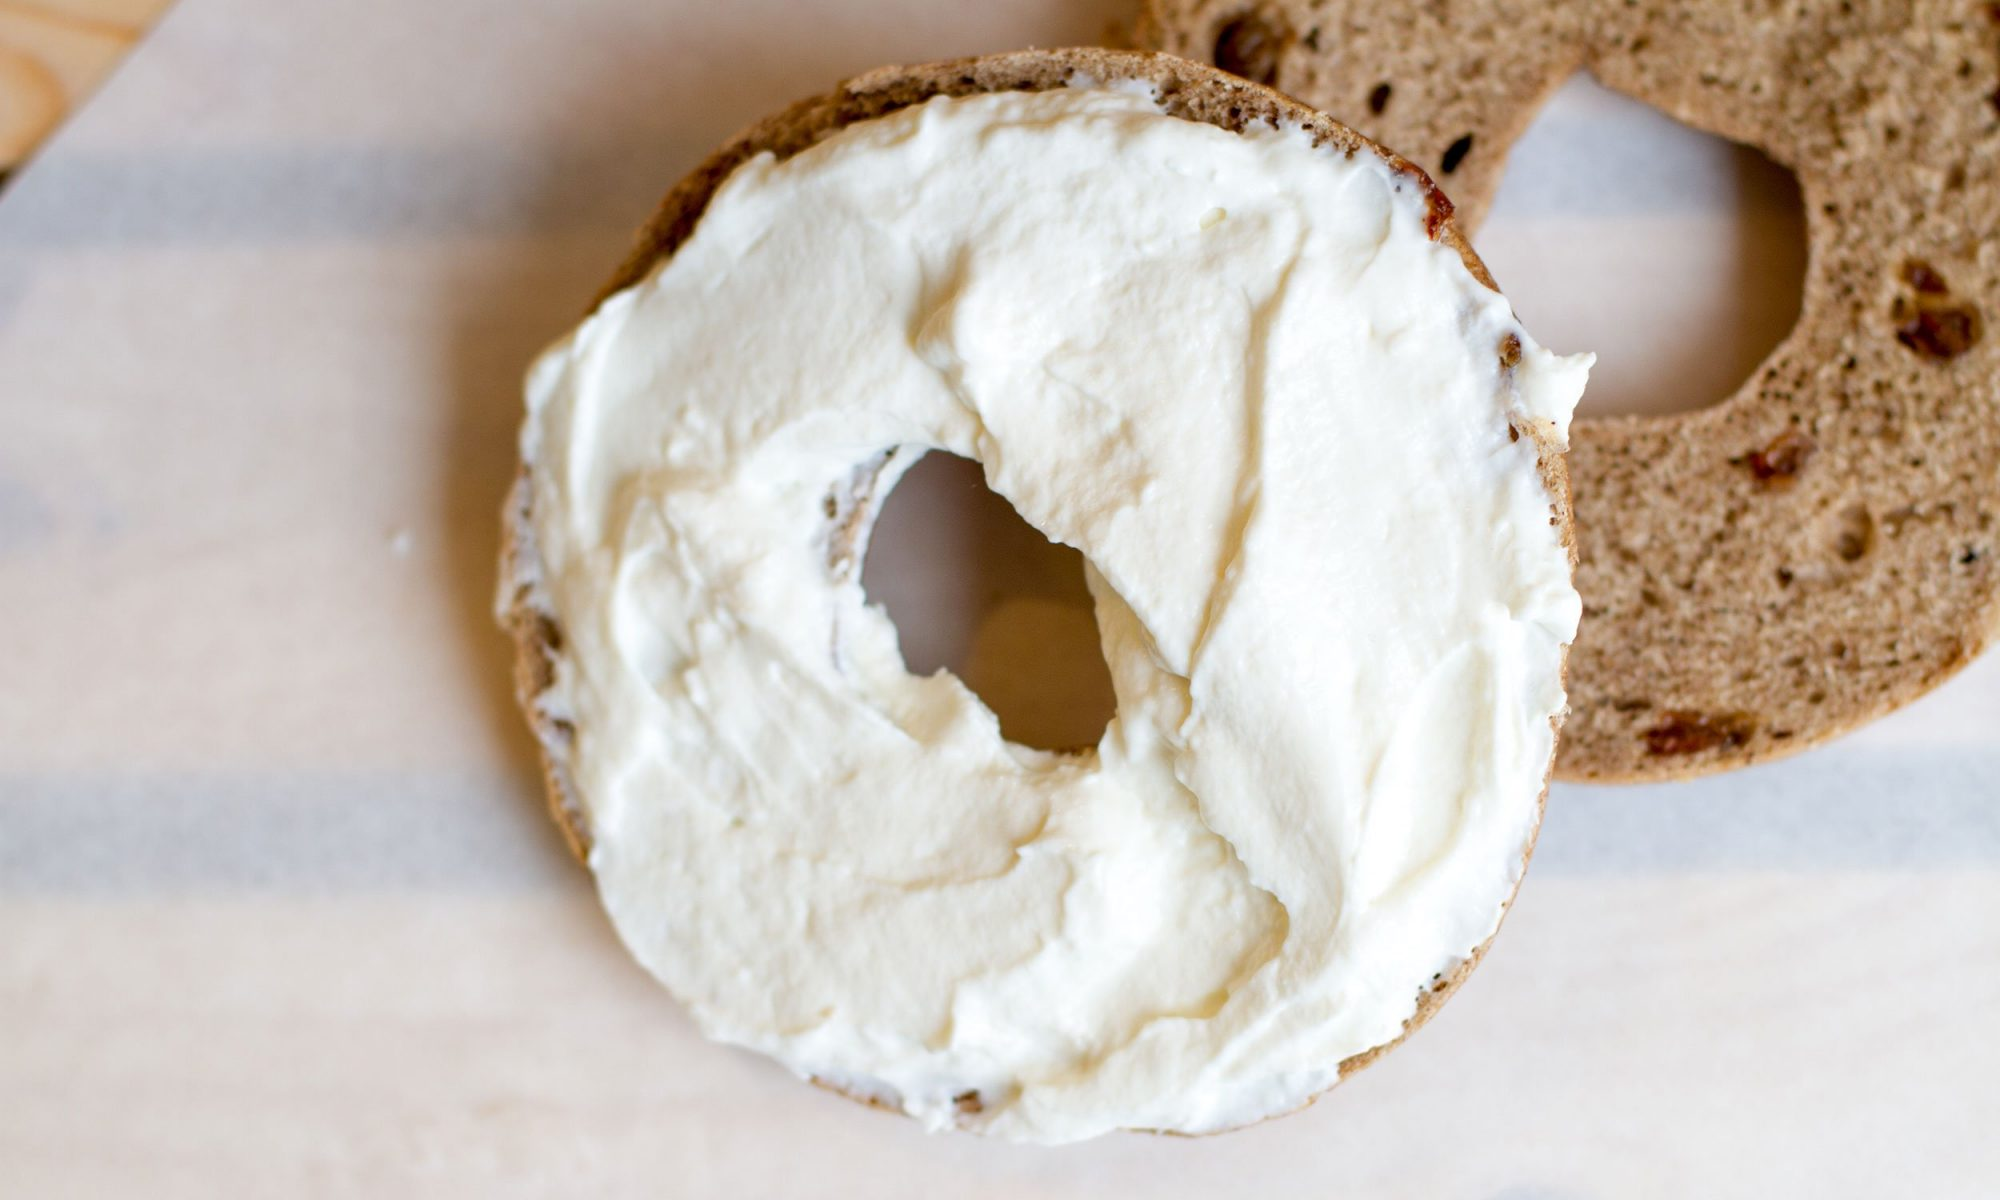 Sensational The Best Cream Cheese Substitutes For Every Situation Download Free Architecture Designs Scobabritishbridgeorg